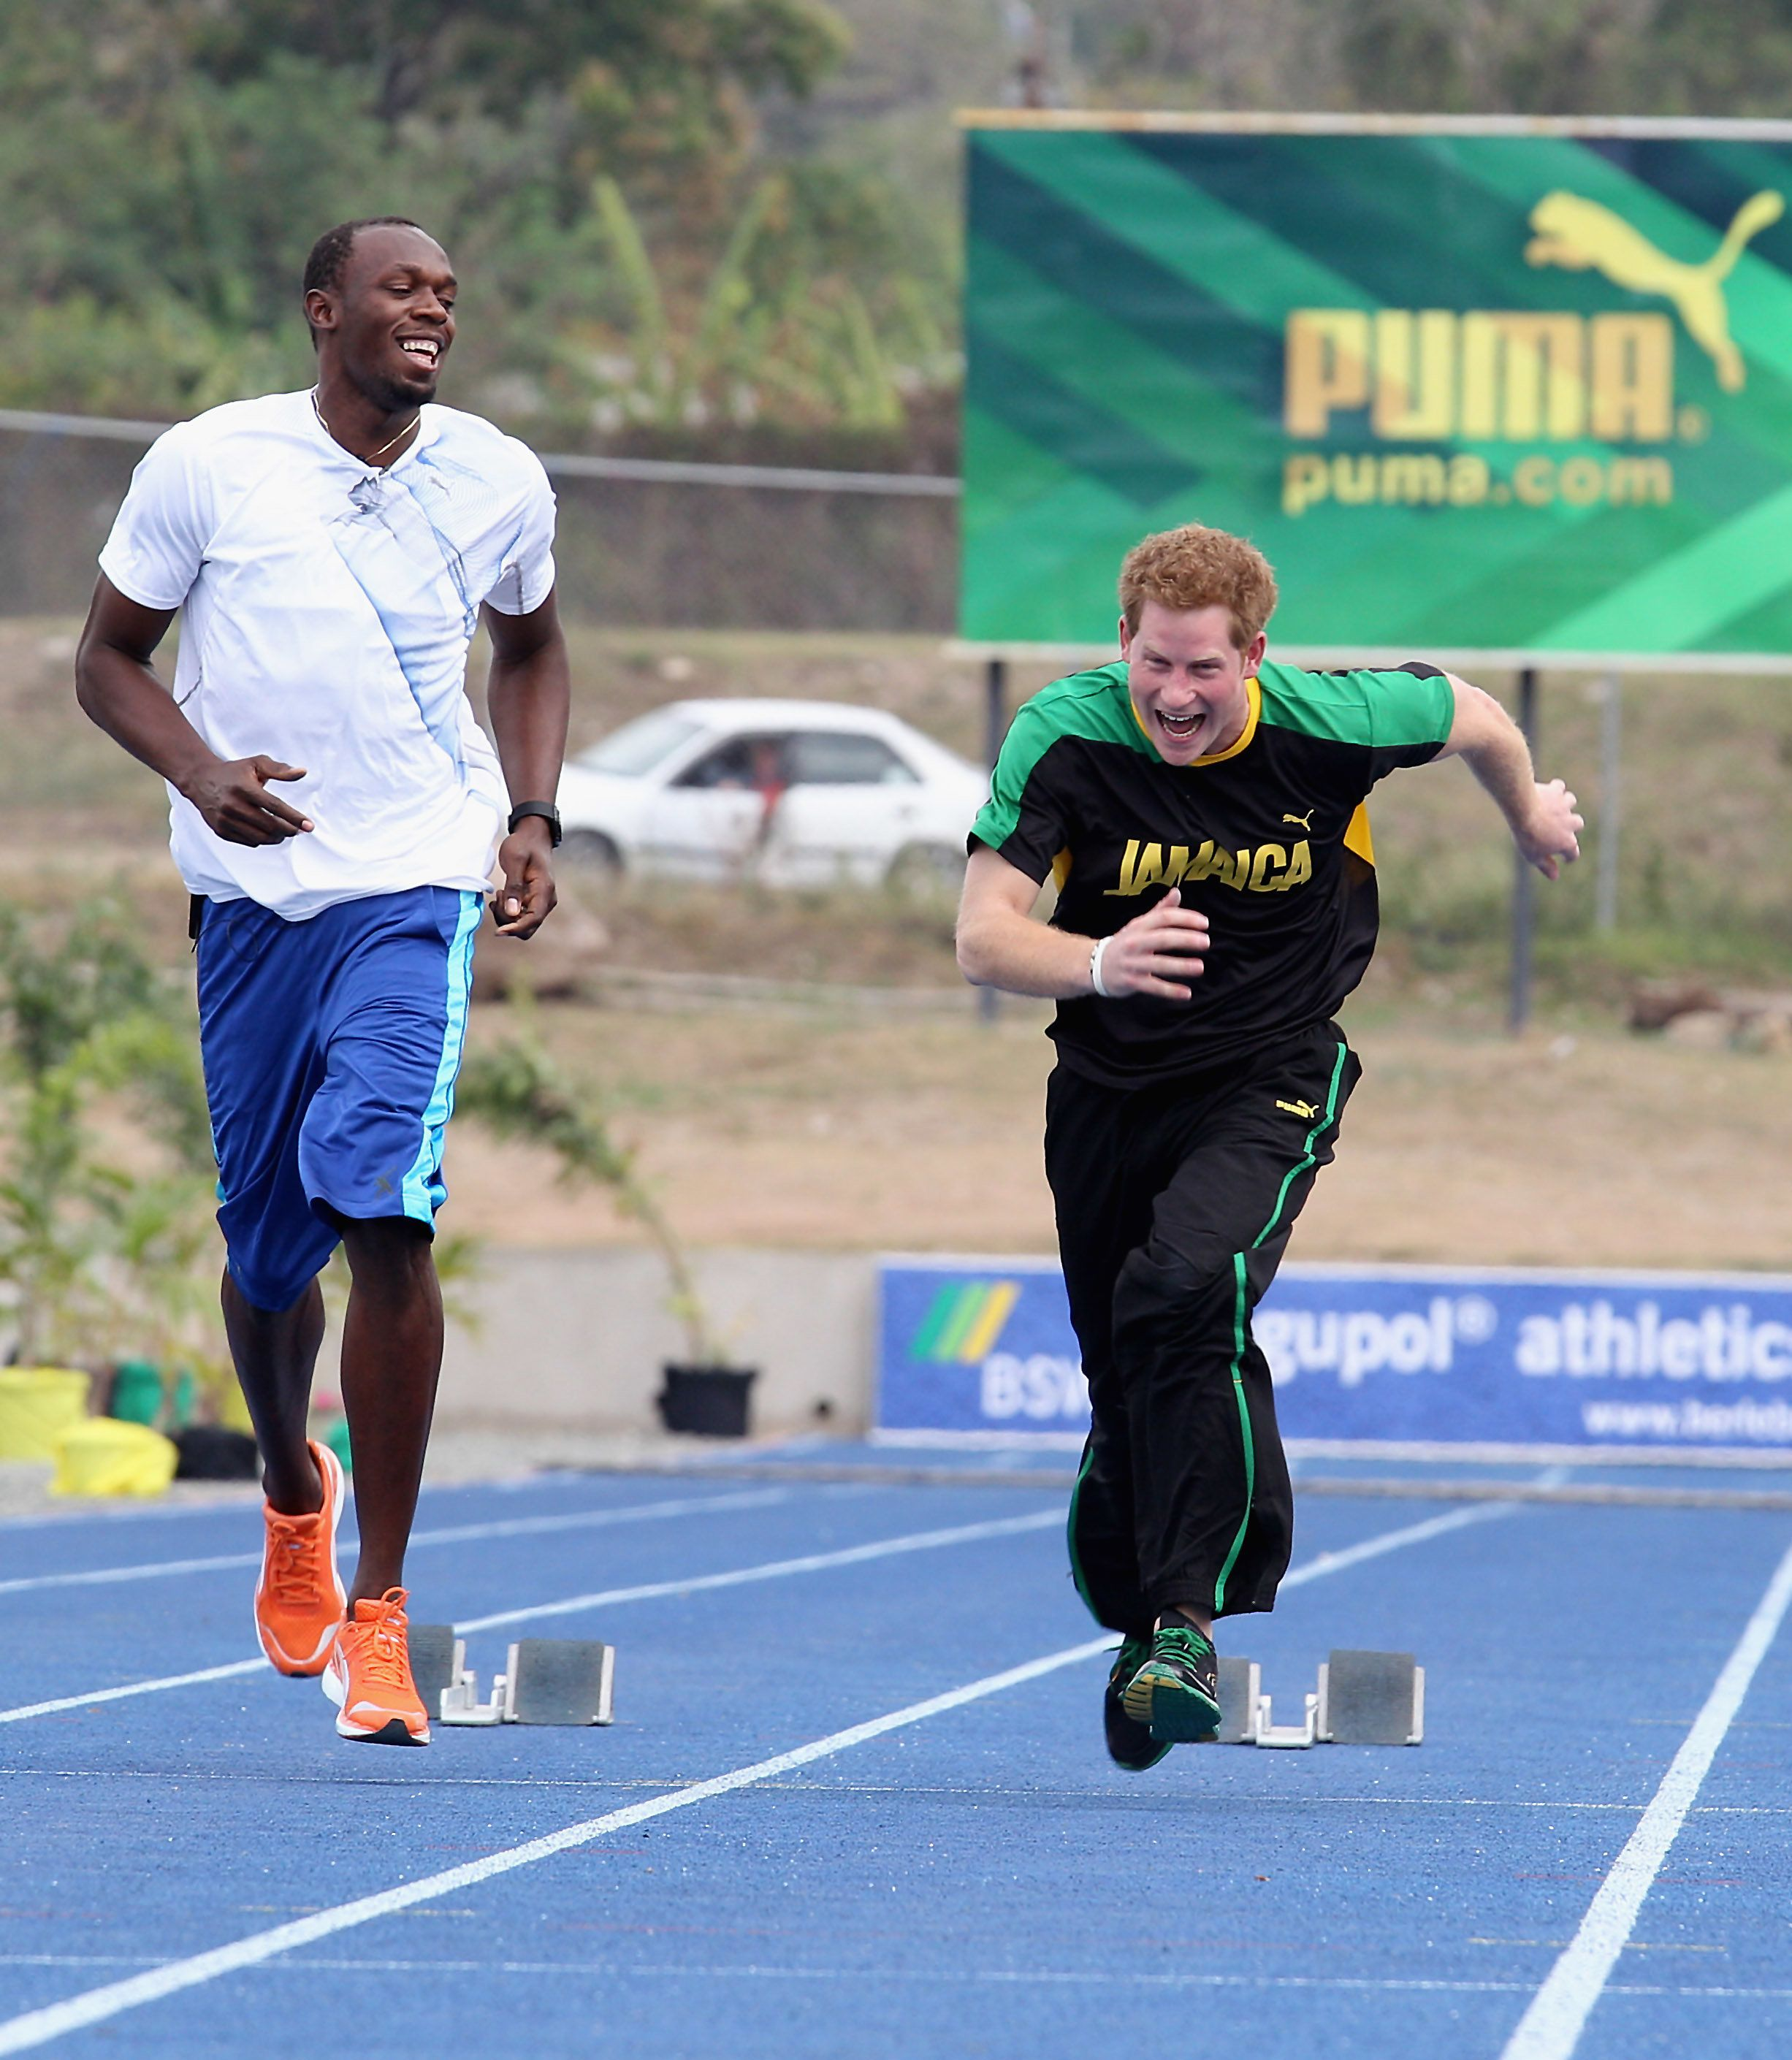 Harry races Usain Bolt at the University of the West Indies